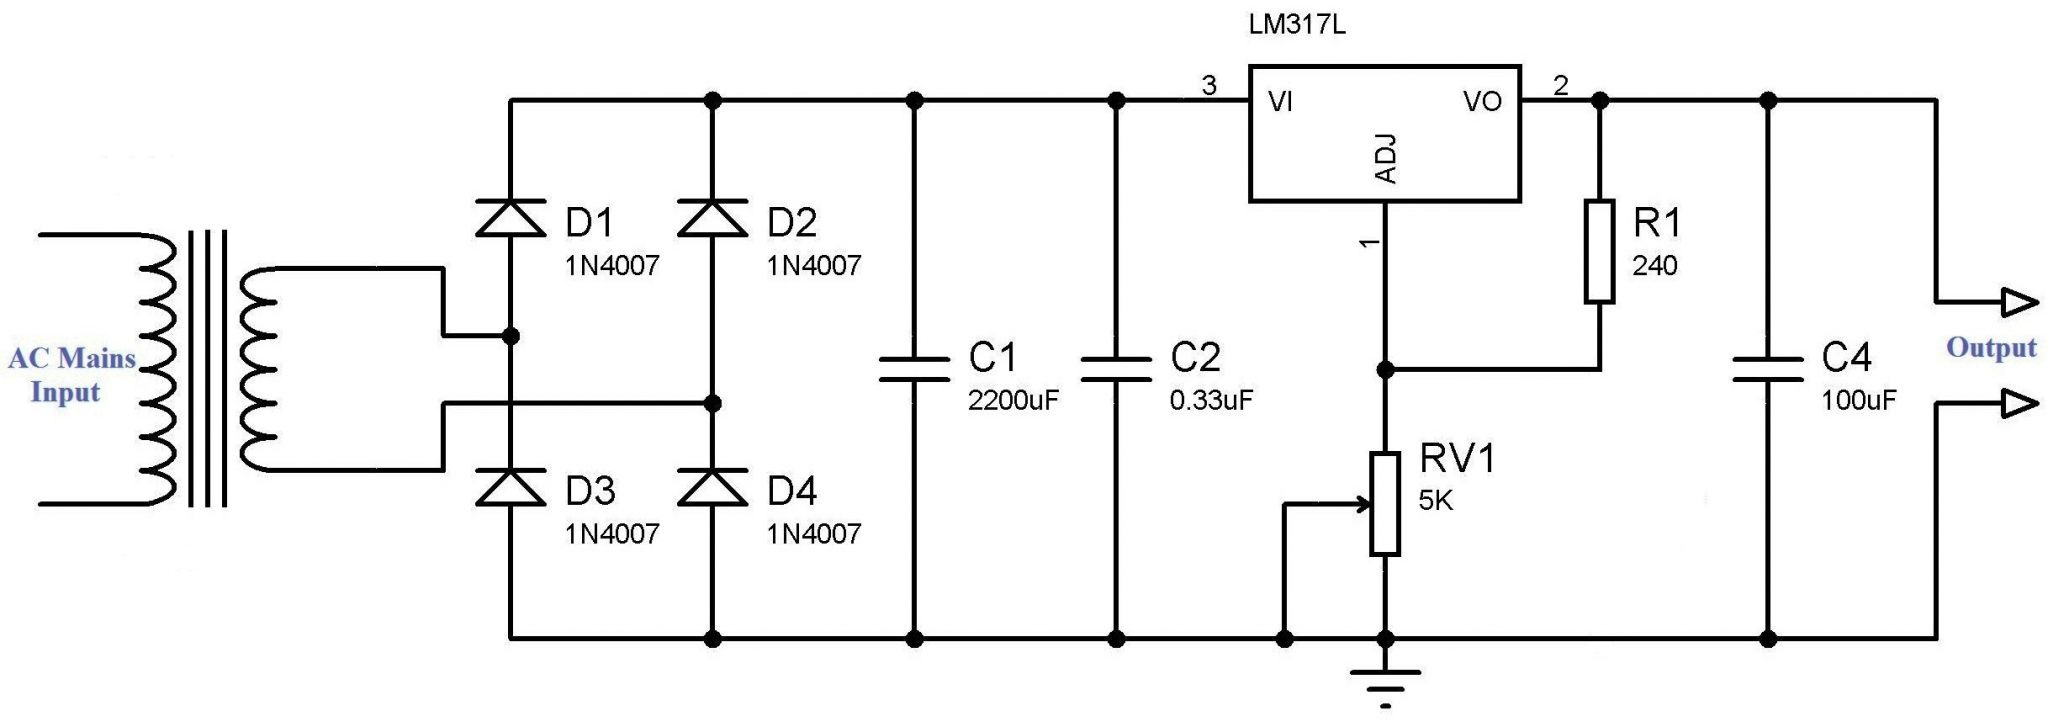 lm317 30v variable power supply circuit pictures